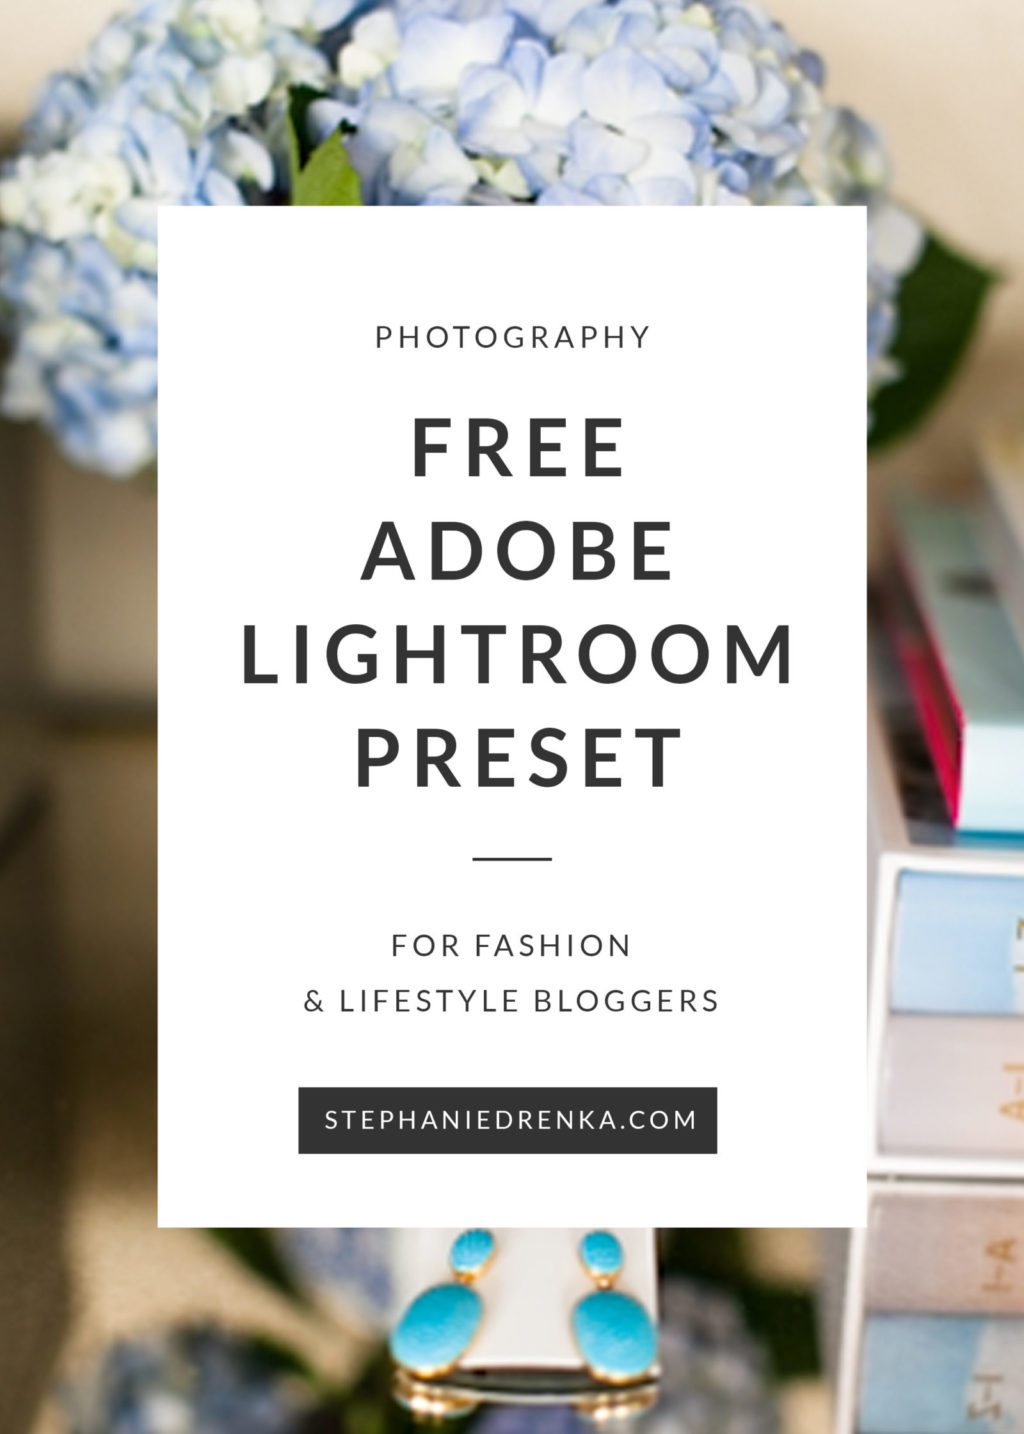 Download the FREE Lightroom Preset designed for fashion and lifestyle bloggers.